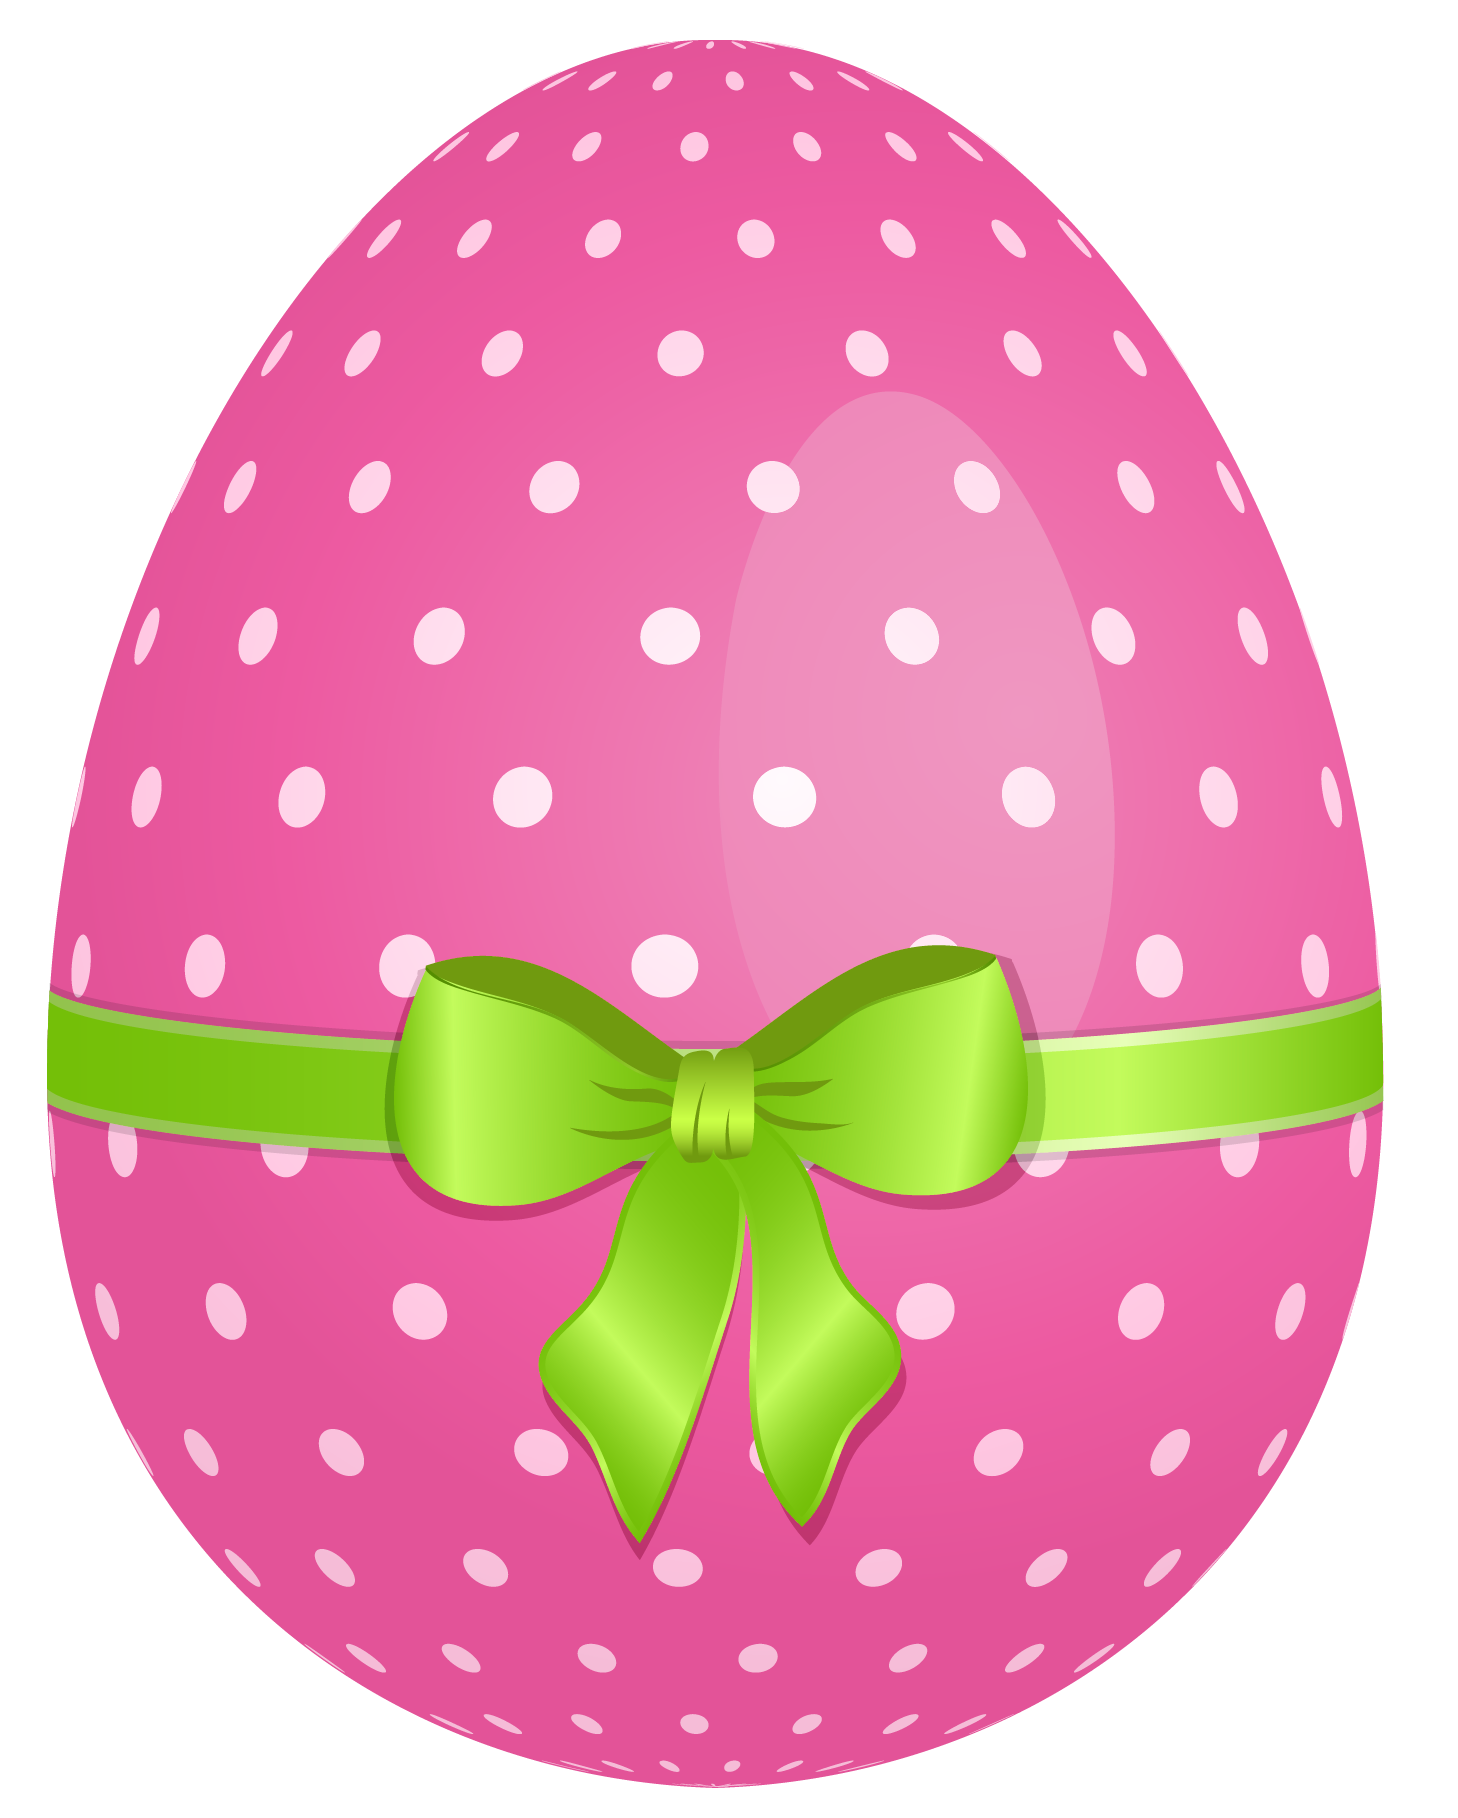 30 easter egg clipart graphic royalty free Easter egg clipart - ClipartFest graphic royalty free